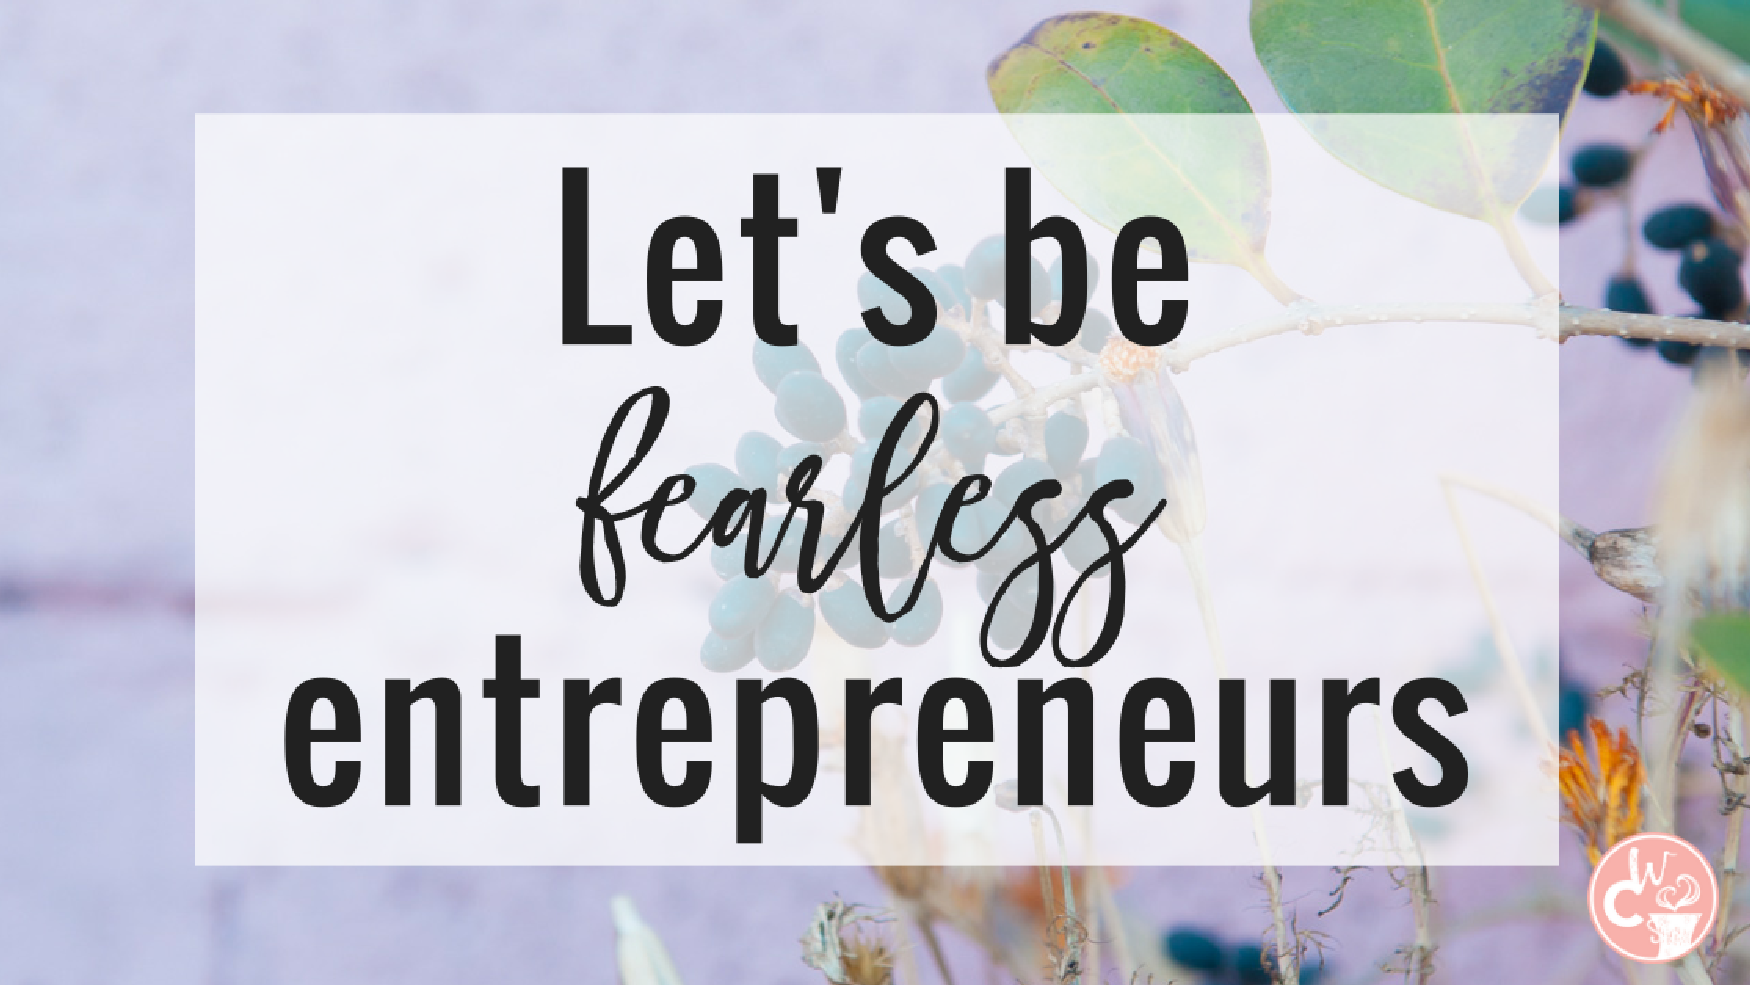 Join a tribe of fearless entrepreneurs who aim to use their God-given talents at pursuing their passions while supporting, inspiring, and empowering one another.